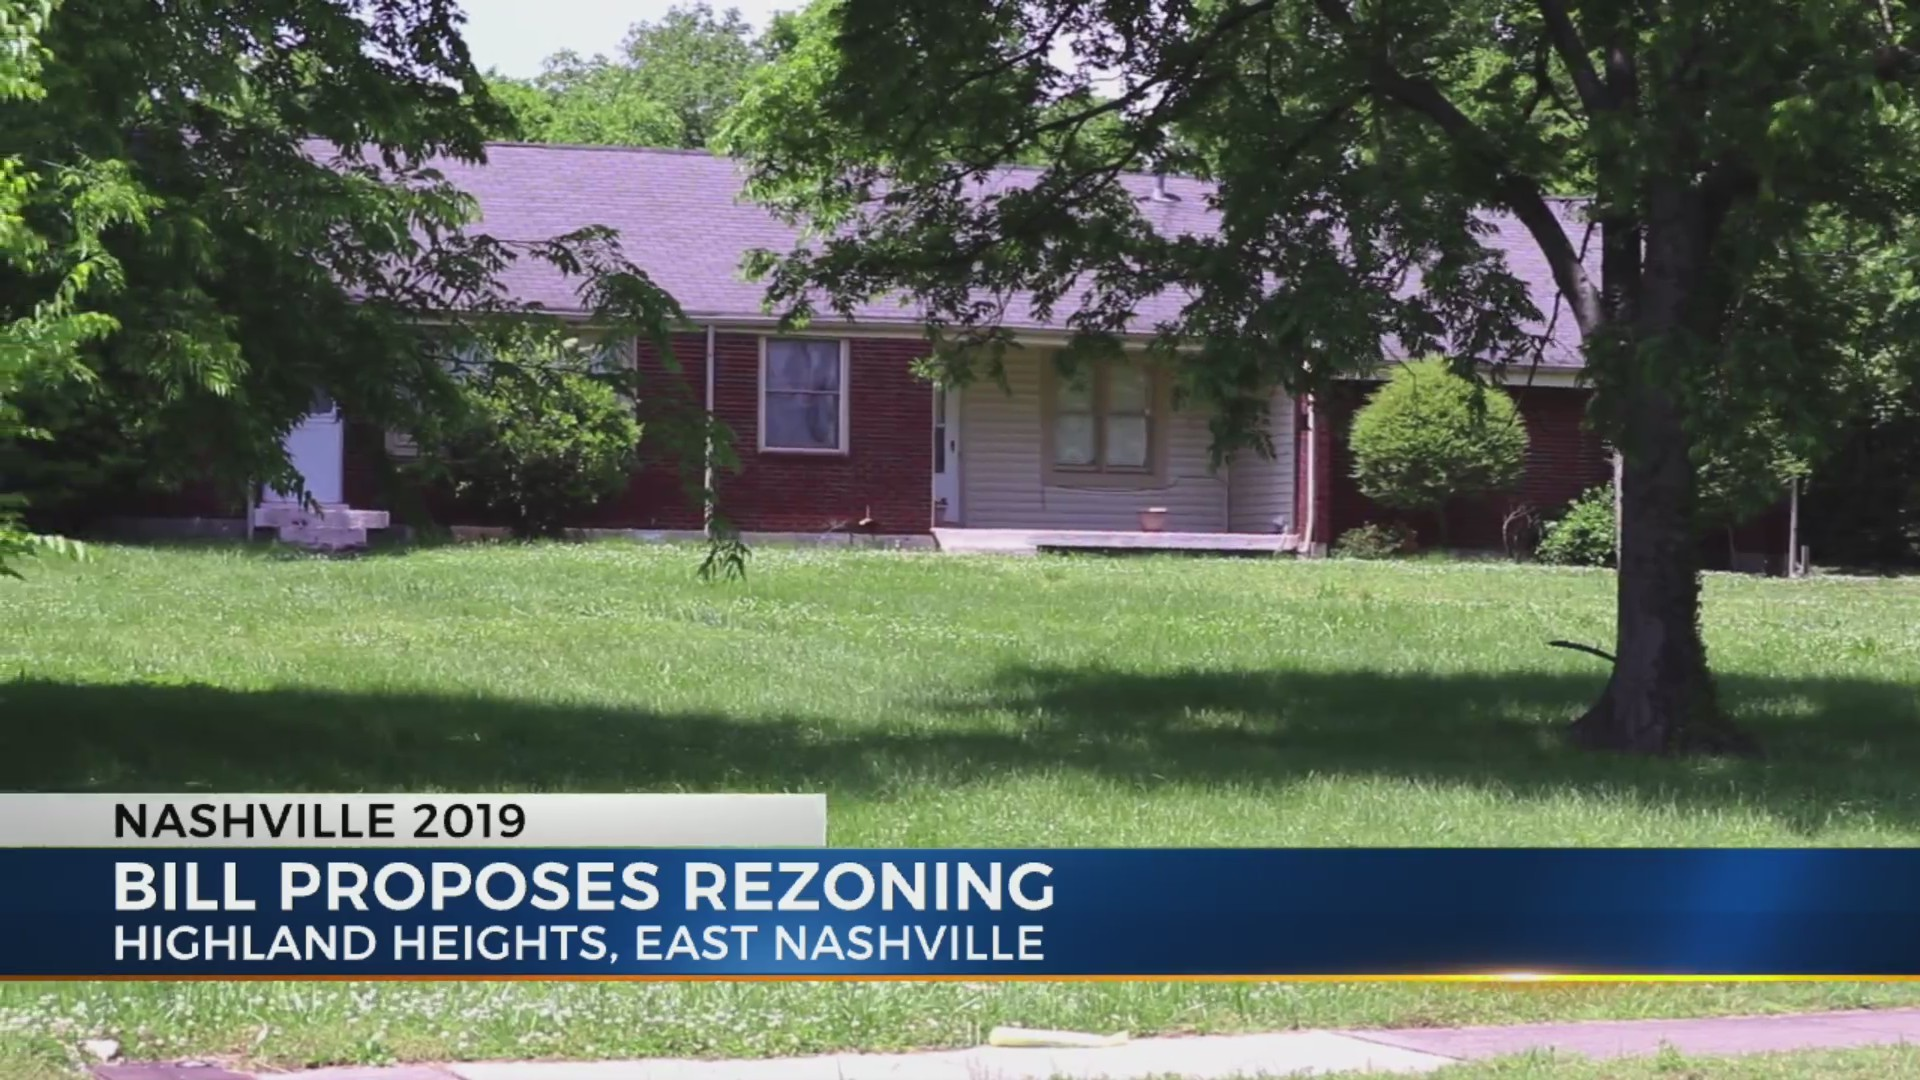 Bill_proposes_rezoning_with_intent_for_a_0_20190508225425